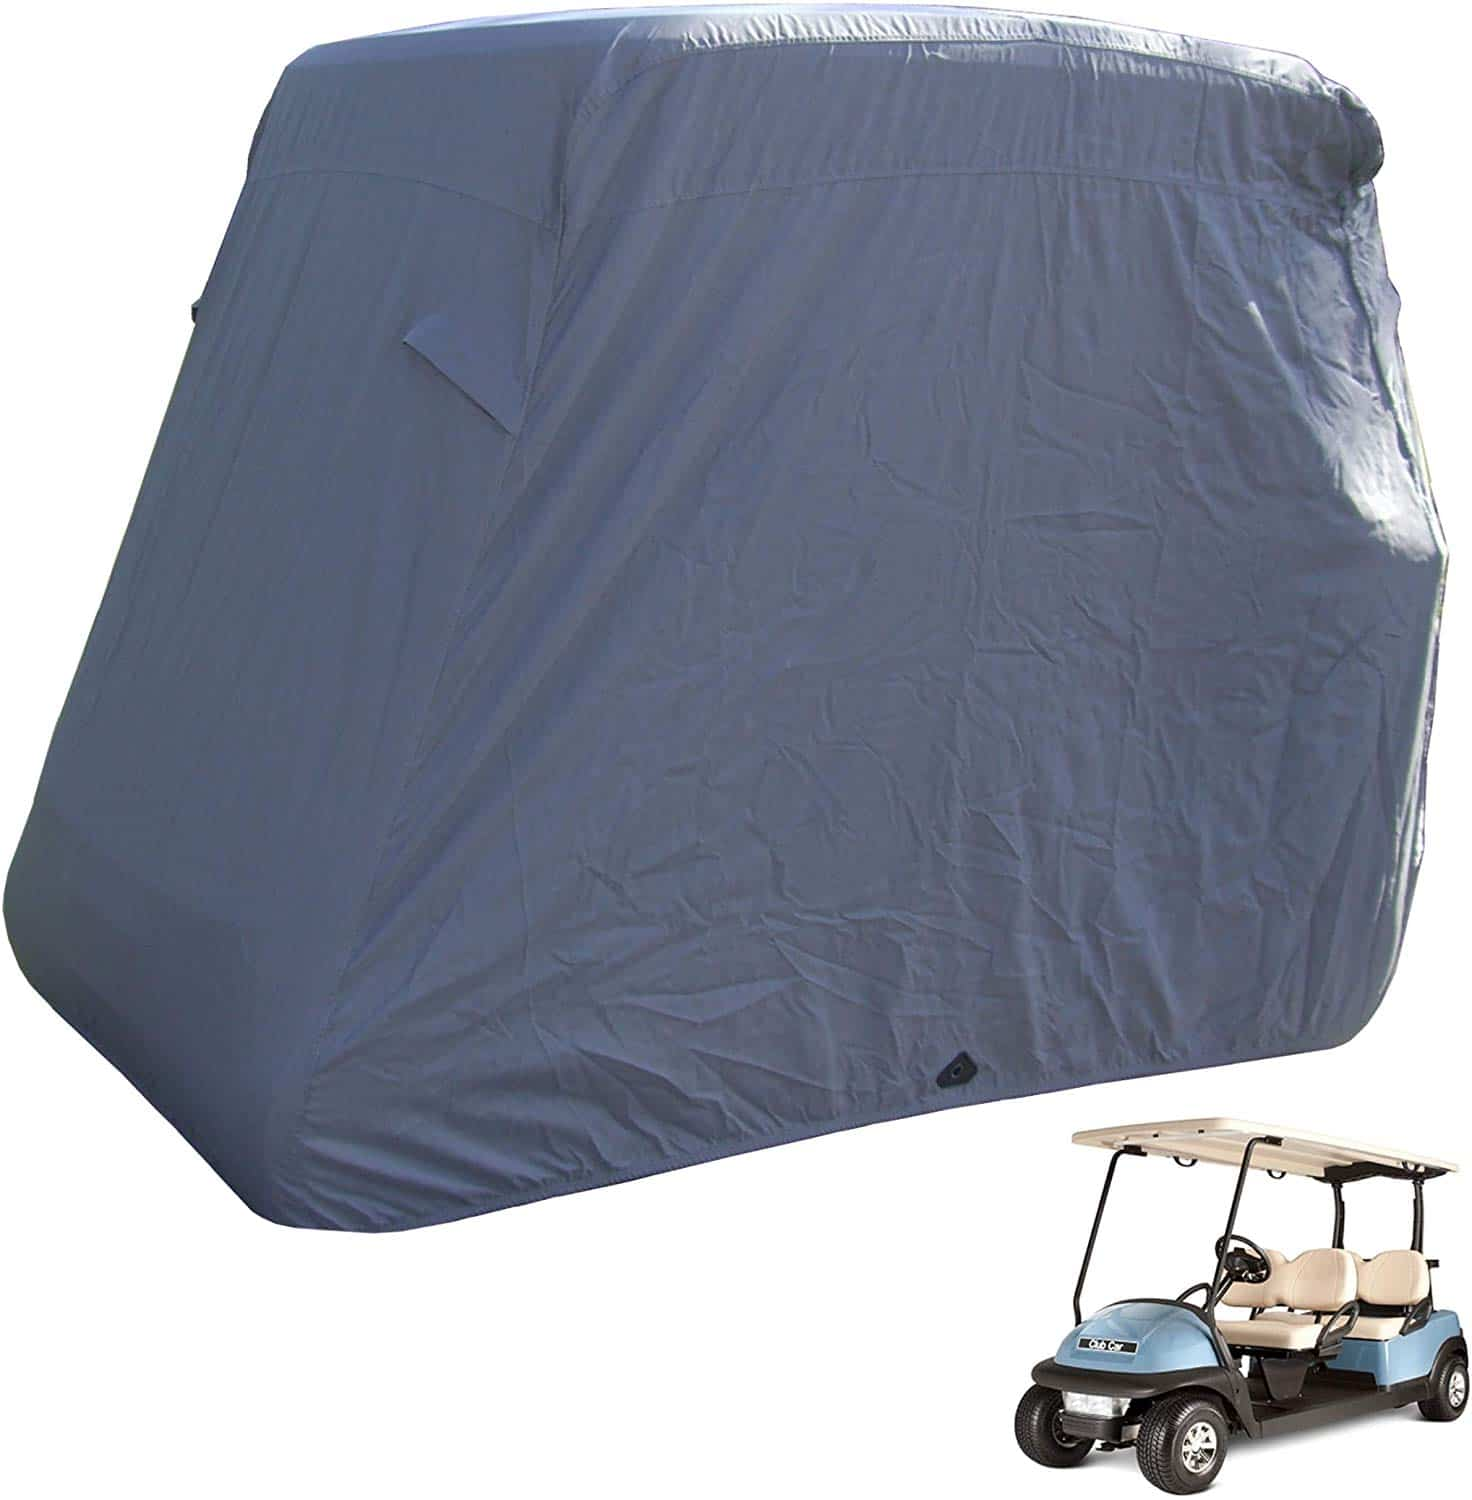 Deluxe 4 Seater Golf Cart Cover